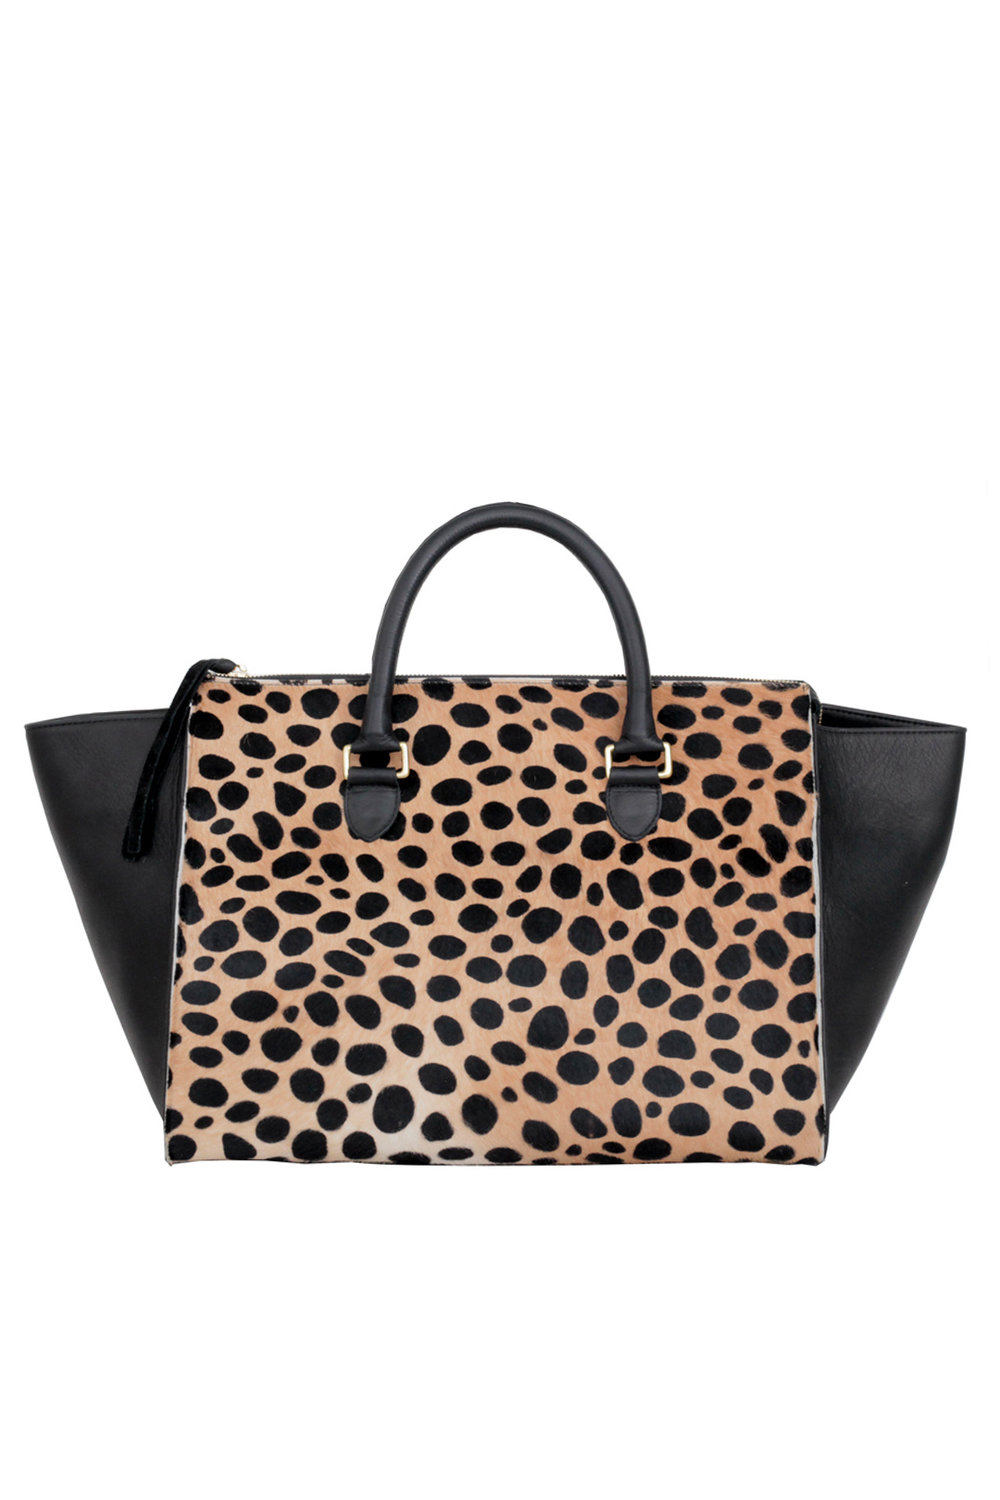 Claire V Leopard Tote.jpg